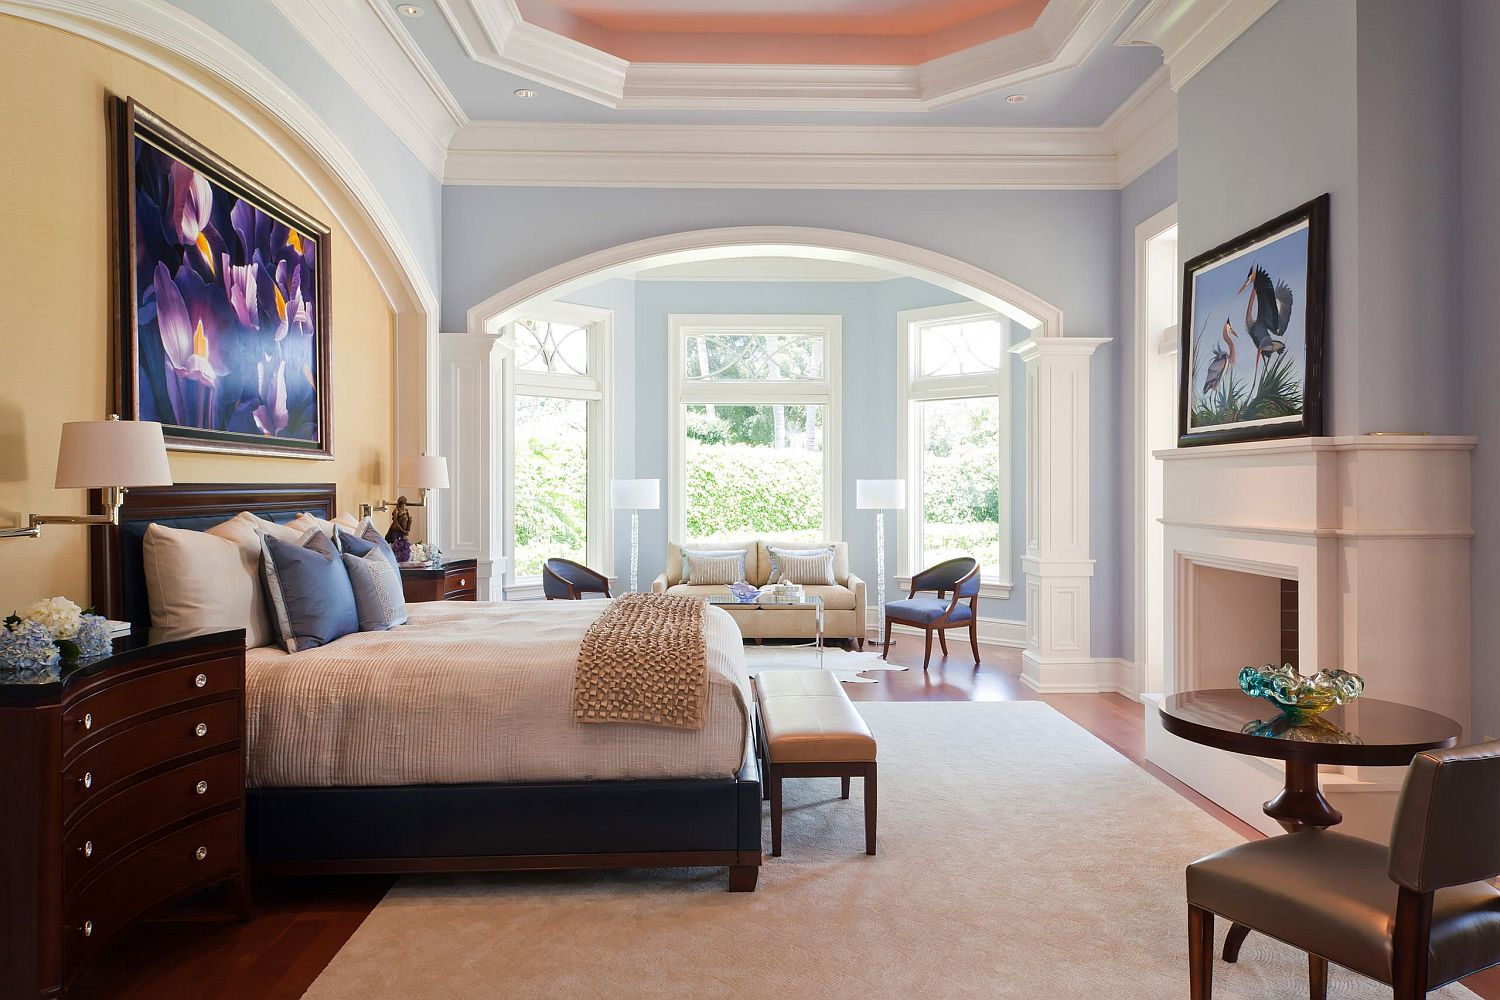 Decorating the wall above headboard and the fireplace mantle with wall art that is eye-catching